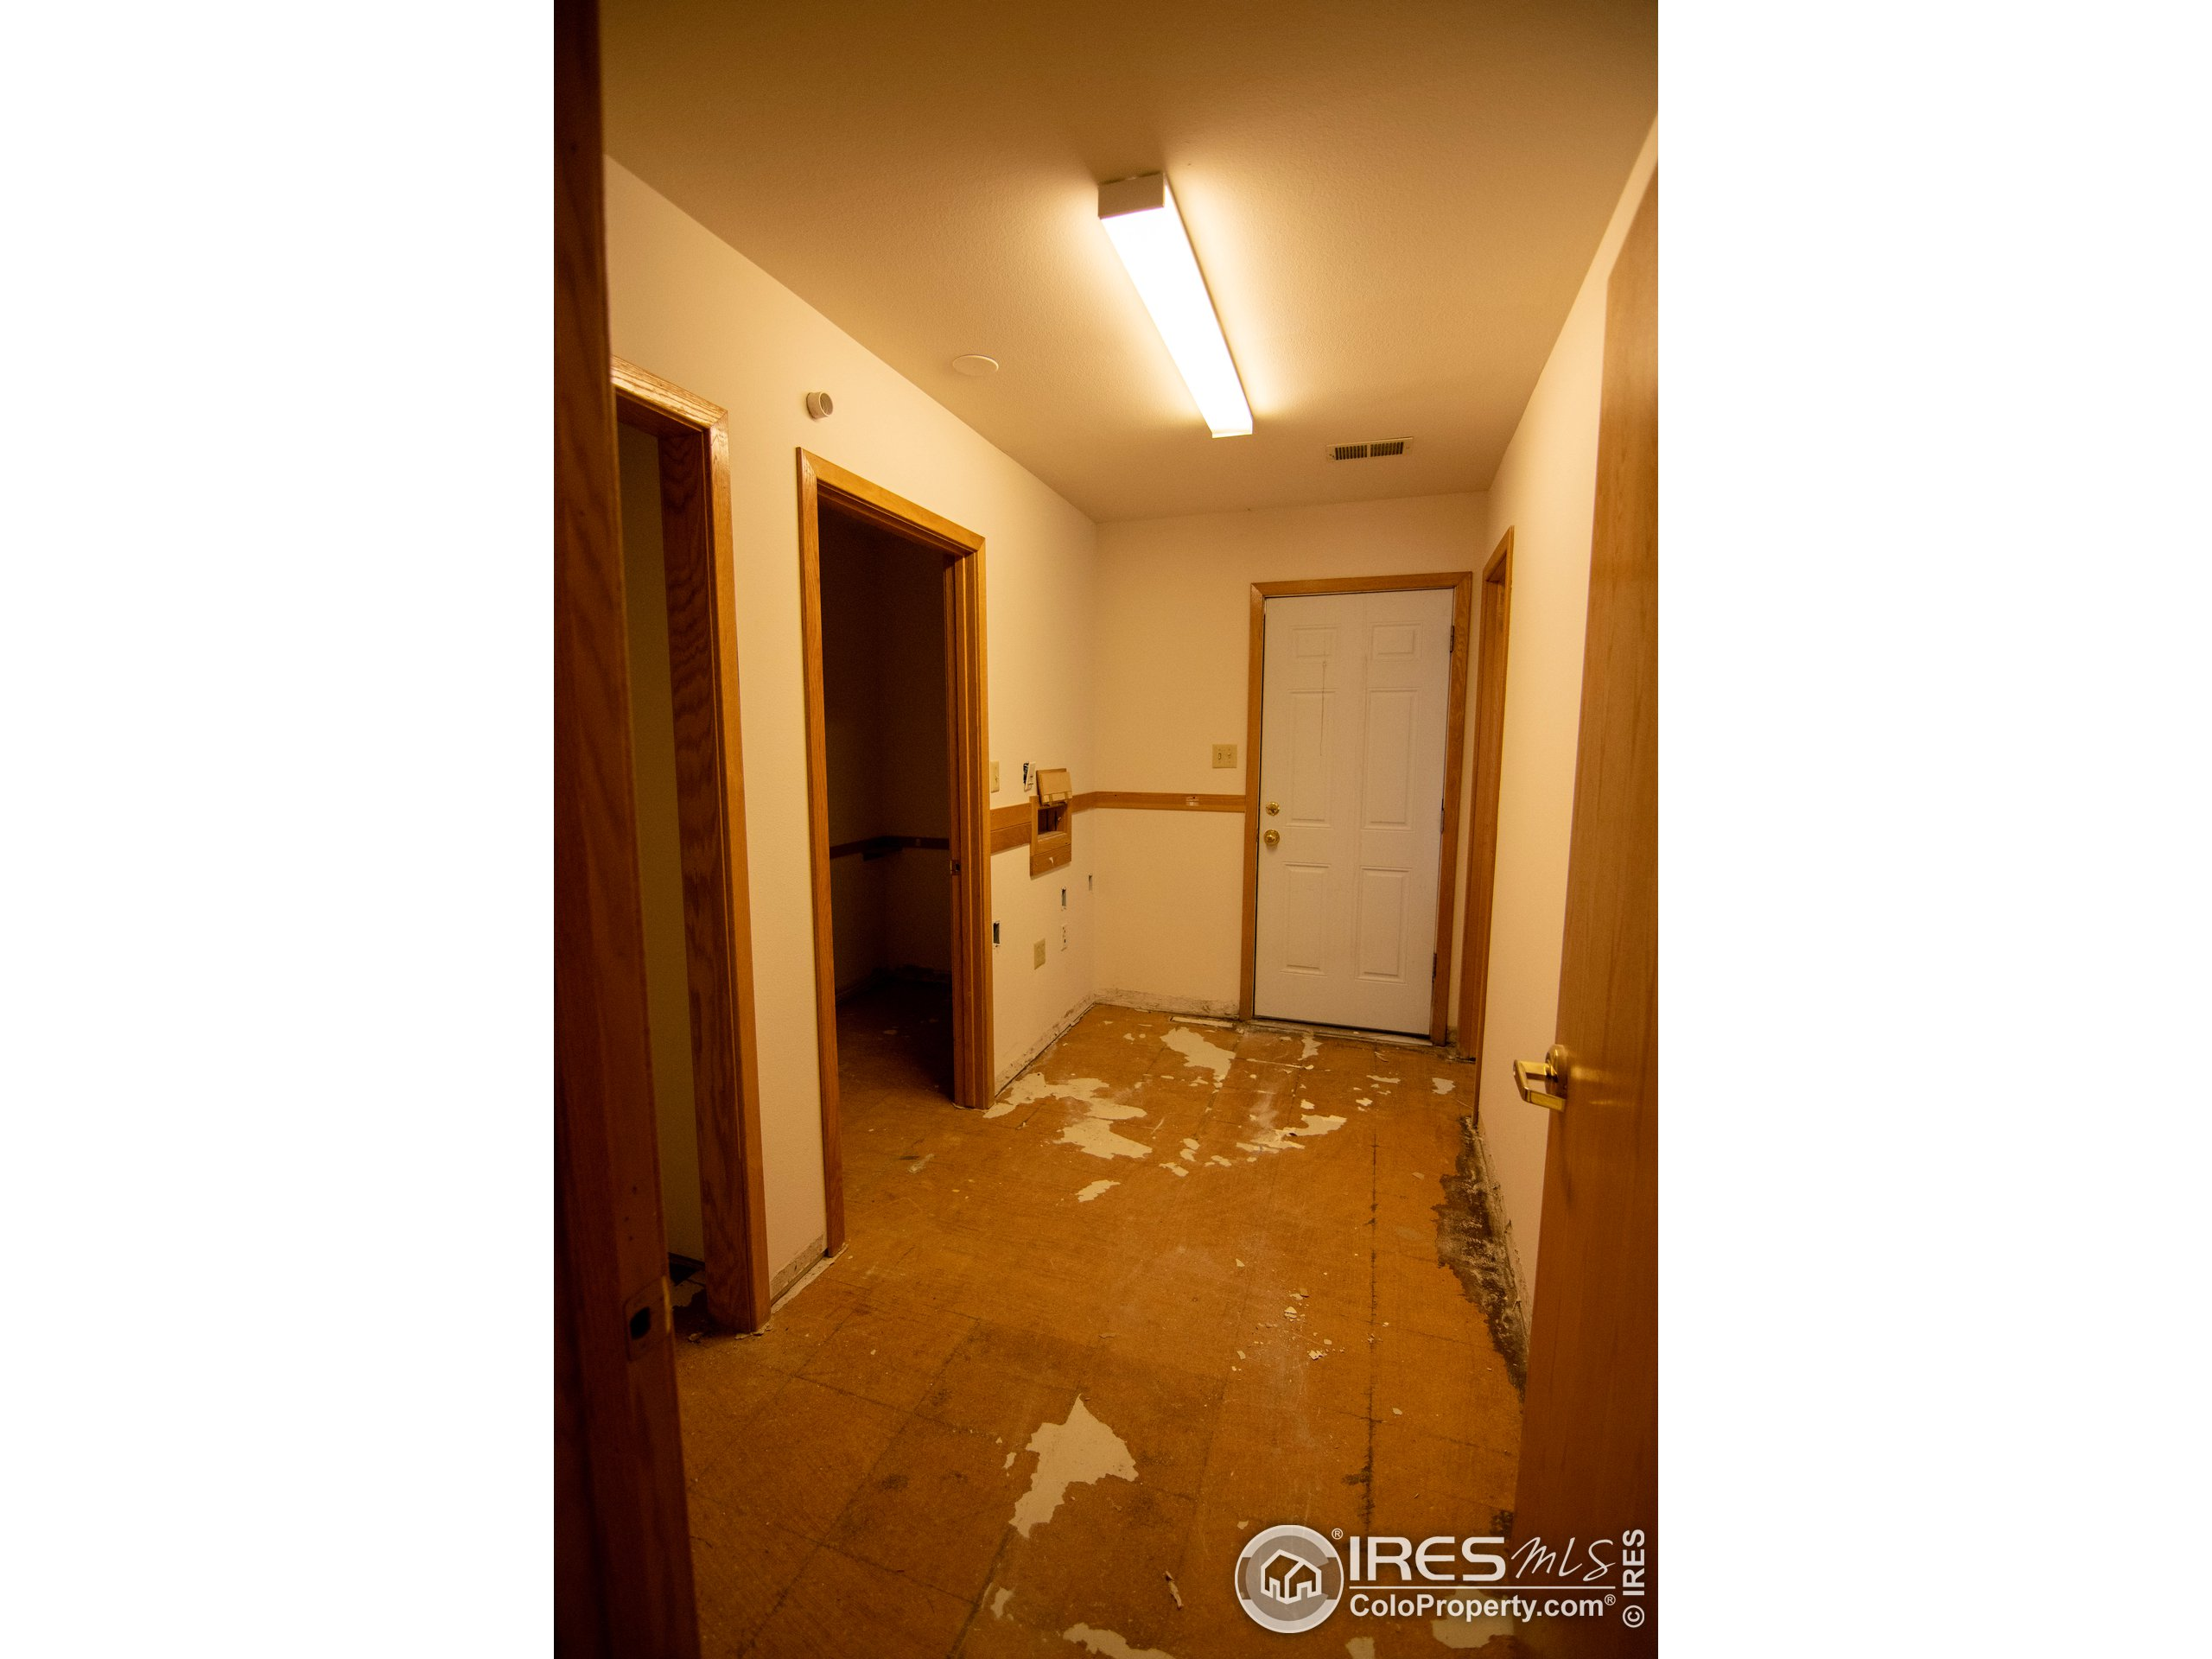 Private entrance/Office or multi use room.  The 3rd restroom is located off this room.